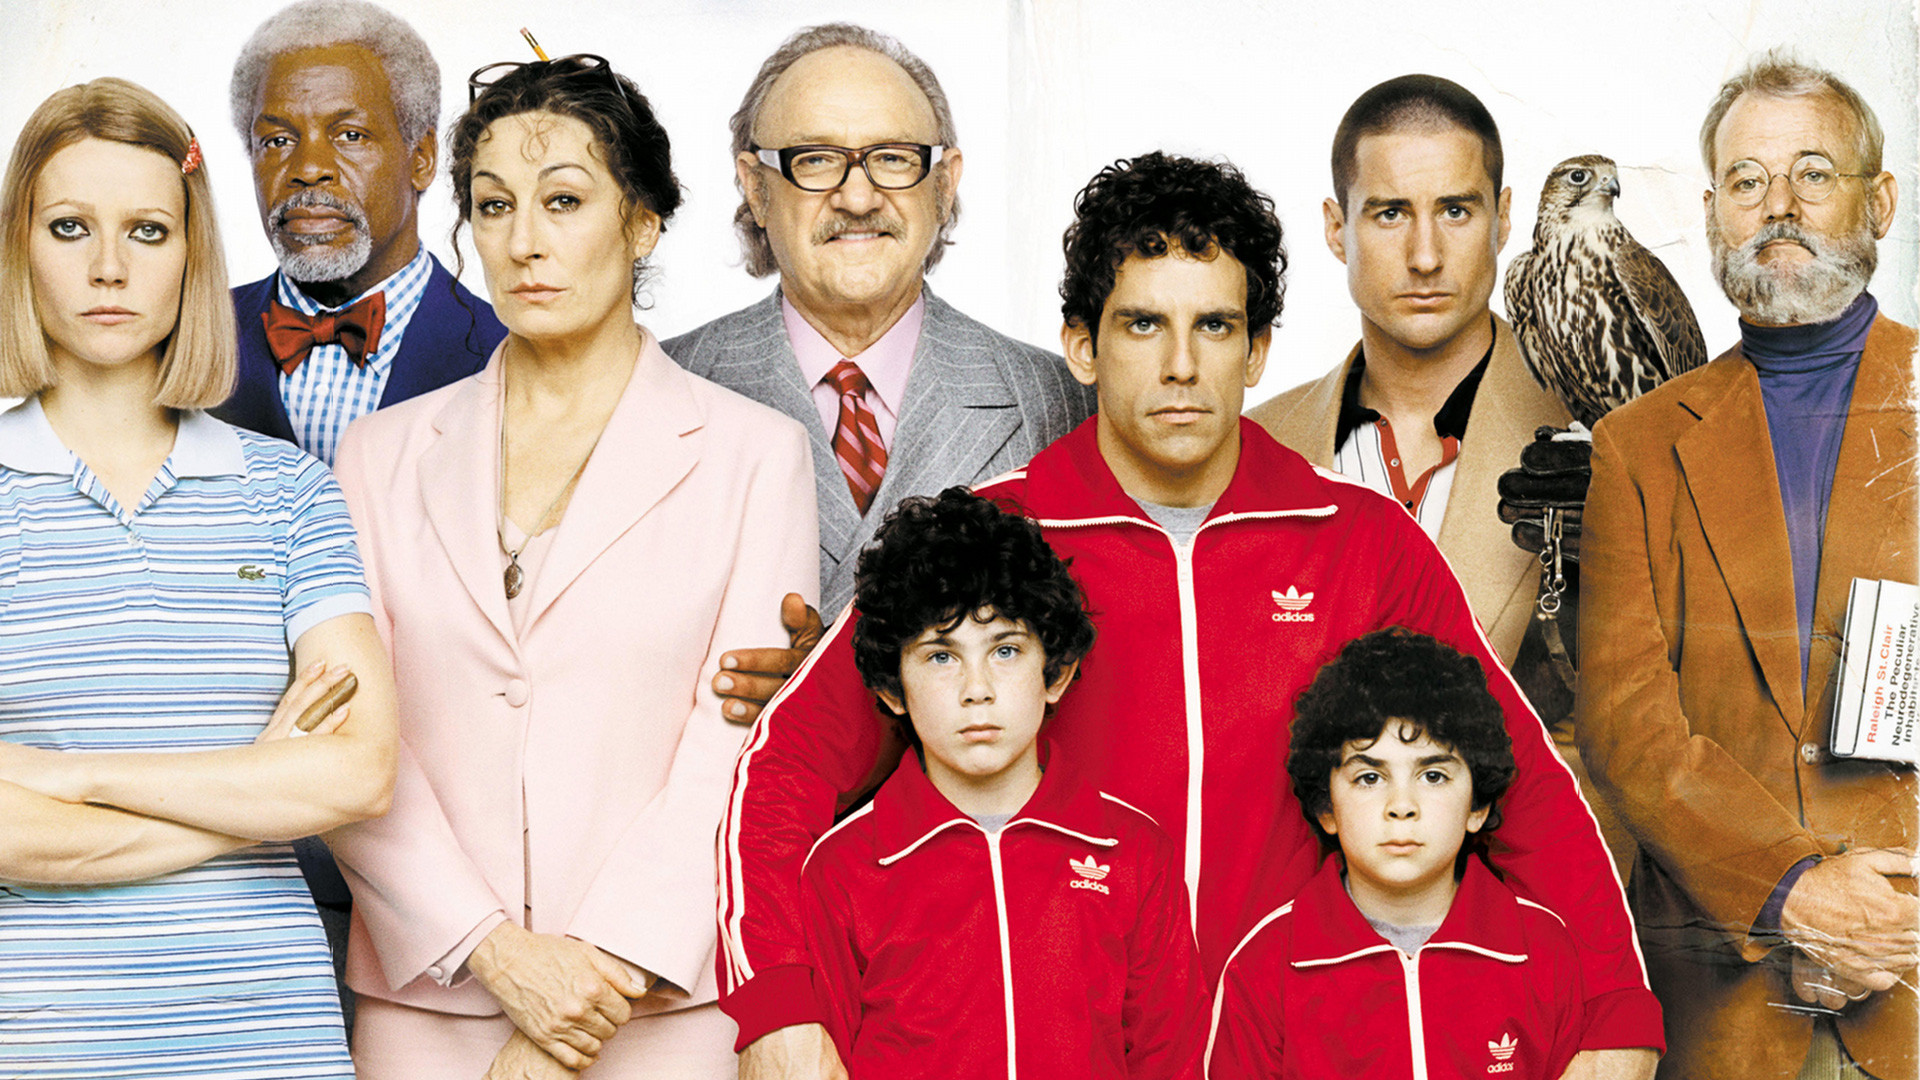 the royal tenenbaums, movies/tv